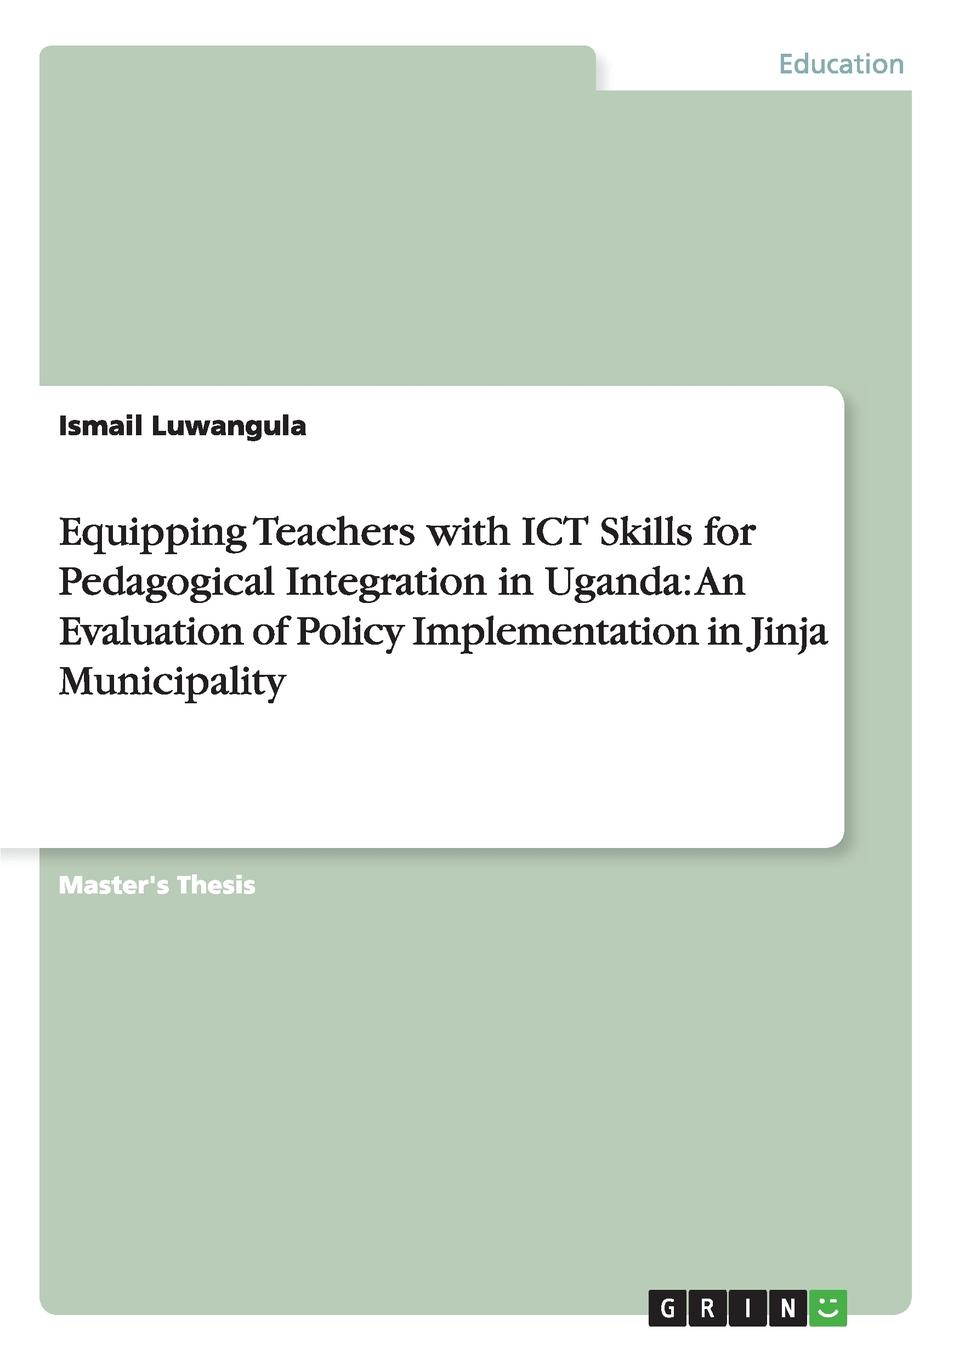 Ismail Luwangula Equipping Teachers with ICT Skills for Pedagogical Integration in Uganda. An Evaluation of Policy Implementation in Jinja Municipality